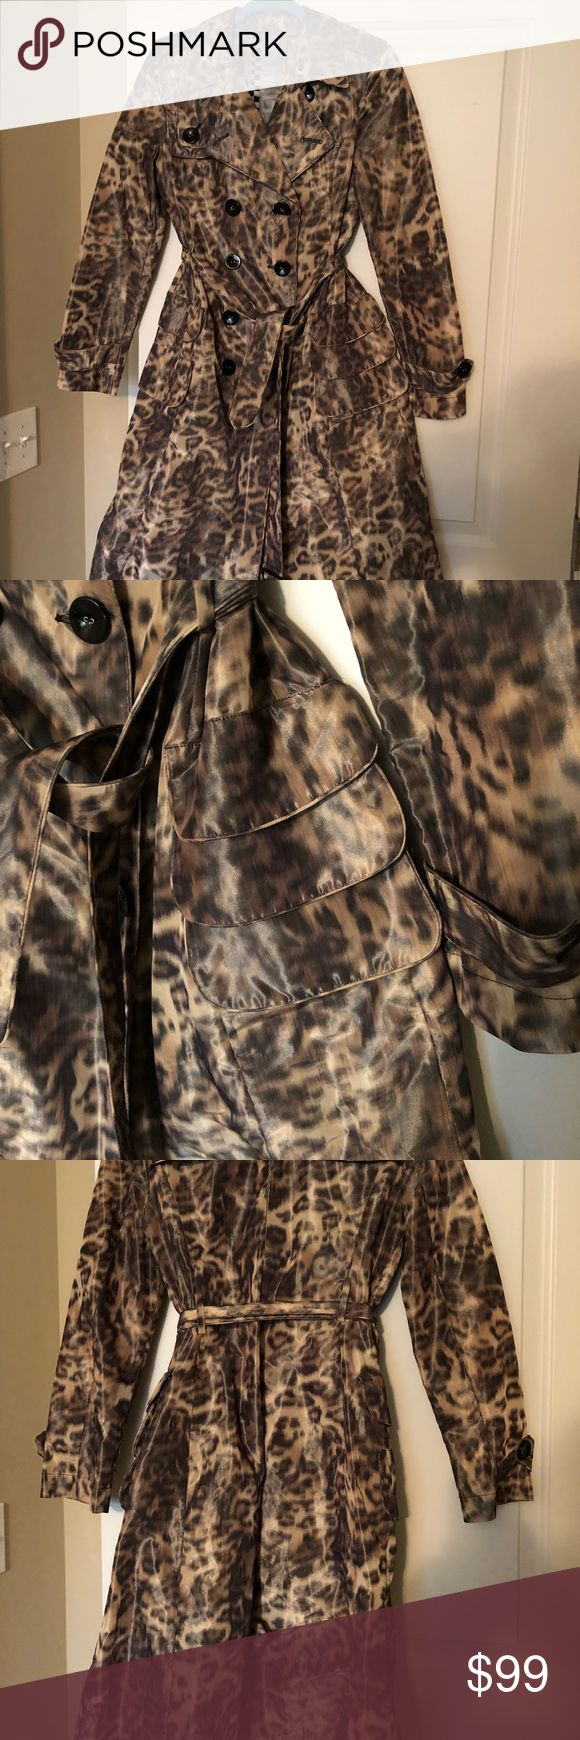 L.A.M.B. Leopard Print Trench Coast 08 Purchased this beautiful trench coat by LAMB at Nordstrom. Worn a few times but is in excellent condition given how long ago it was bought. all buttons are intact, no obvious signs of wear/tear. It is nylon, with a sheen. Please contact with questions! L.A.M.B. Jackets & Coats Trench Coats